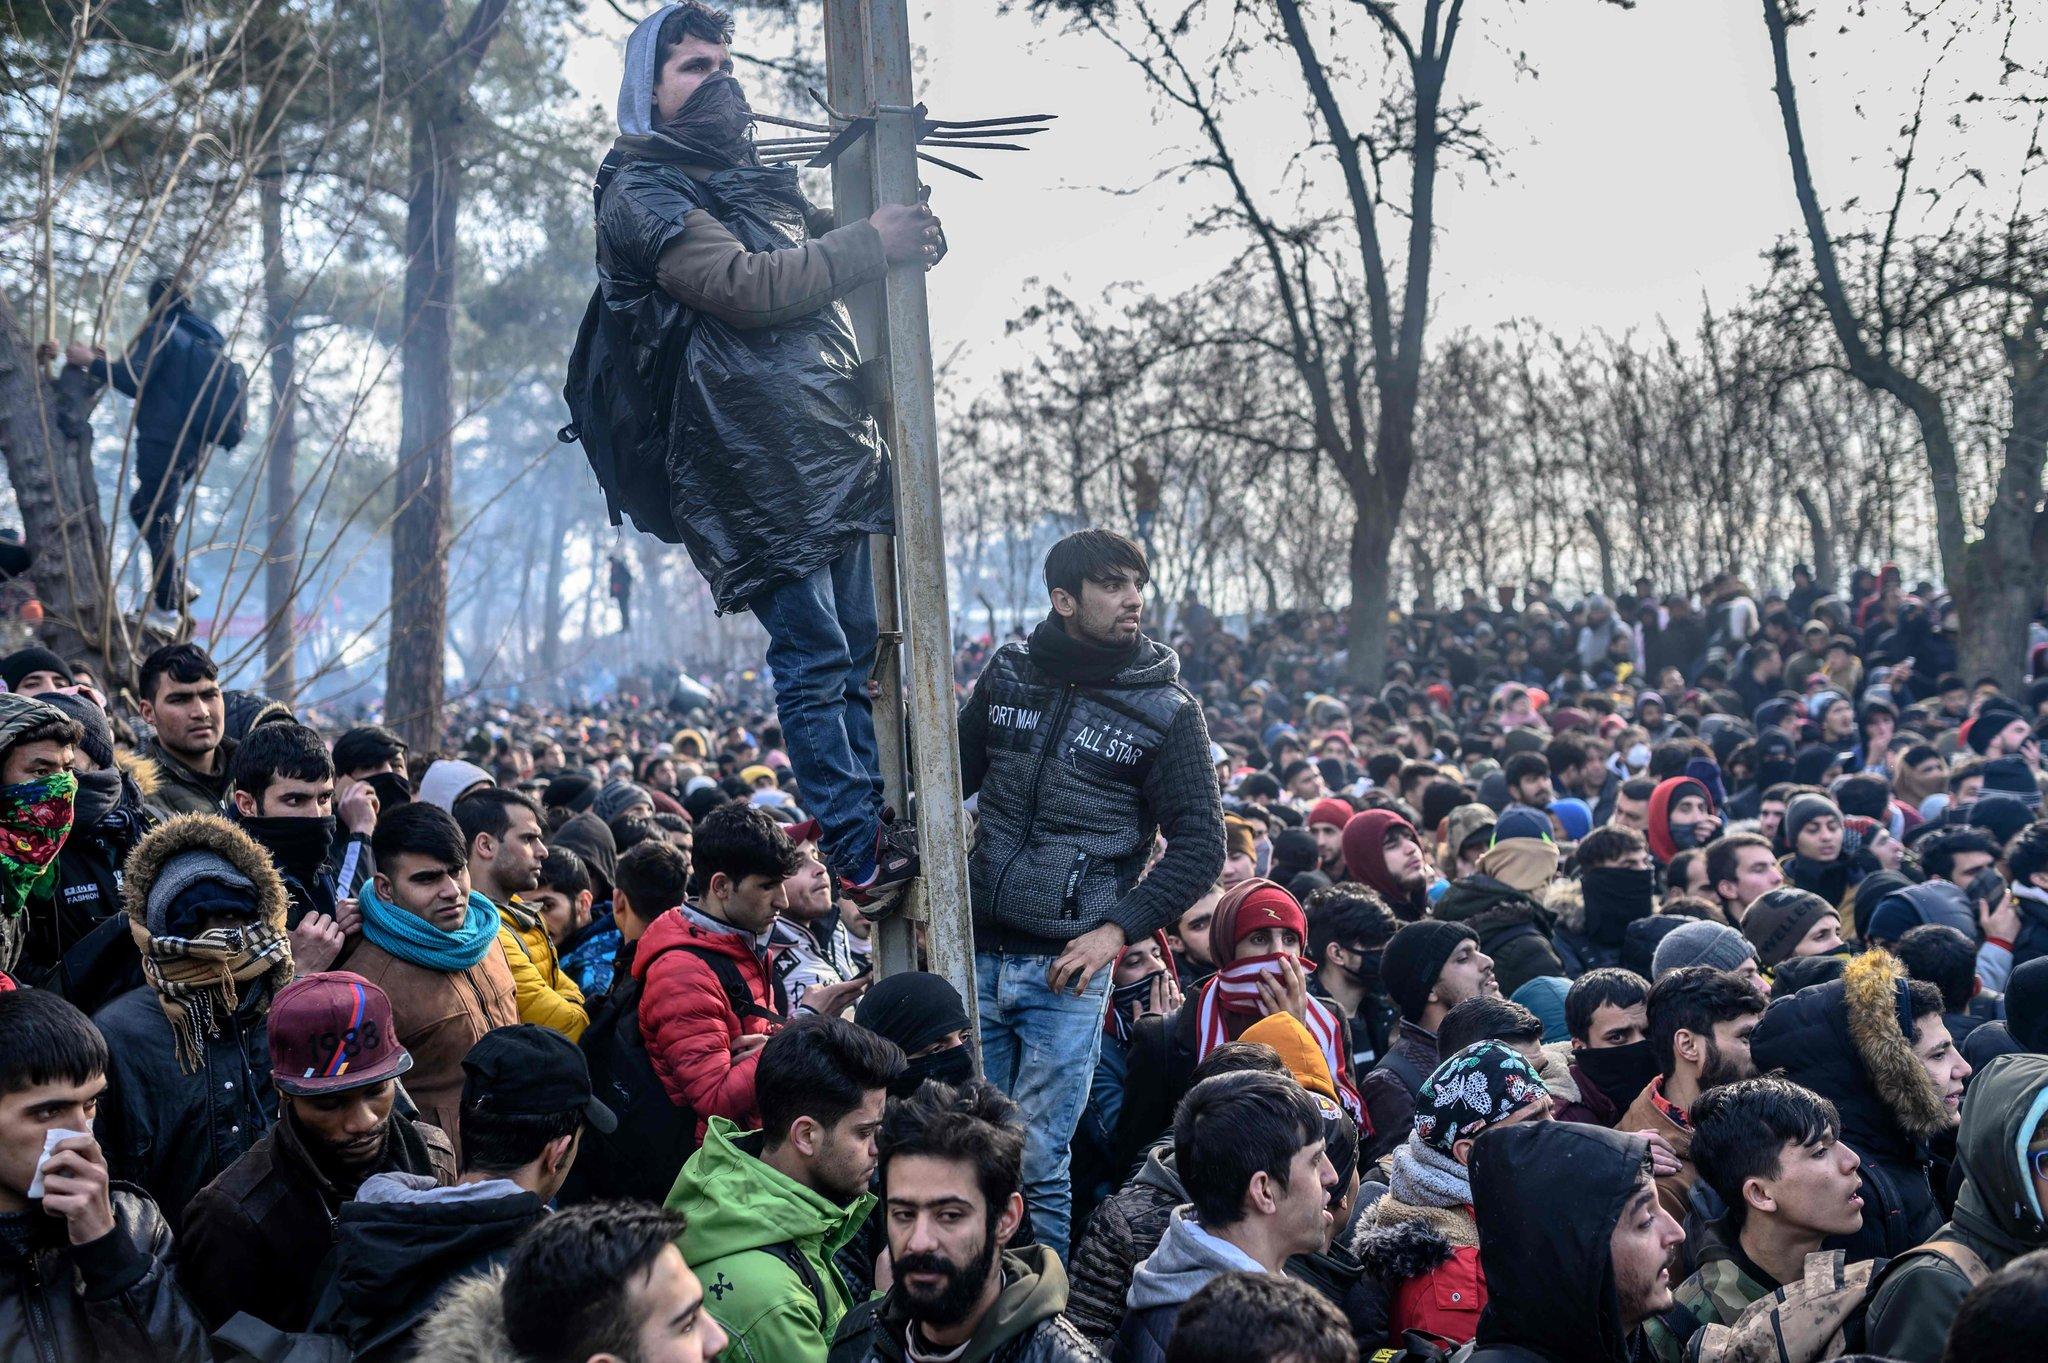 France is ready to help Greece and Bulgaria in protecting borders from the influx of migrants